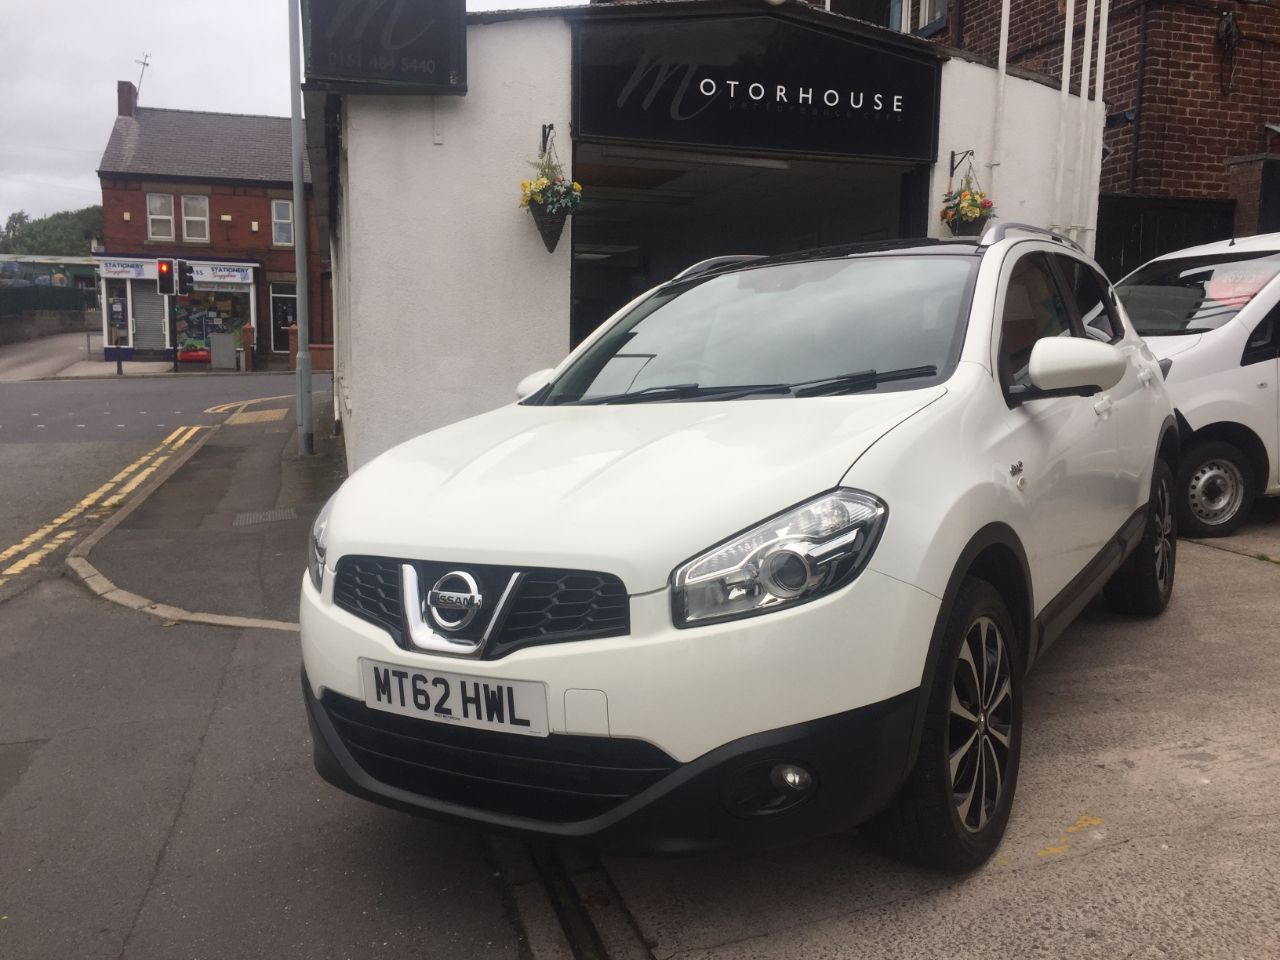 Nissan Qashqai 1.5 dCi [110] N-Tec+ 5dr Hatchback Diesel White at Motorhouse Cheshire Stockport